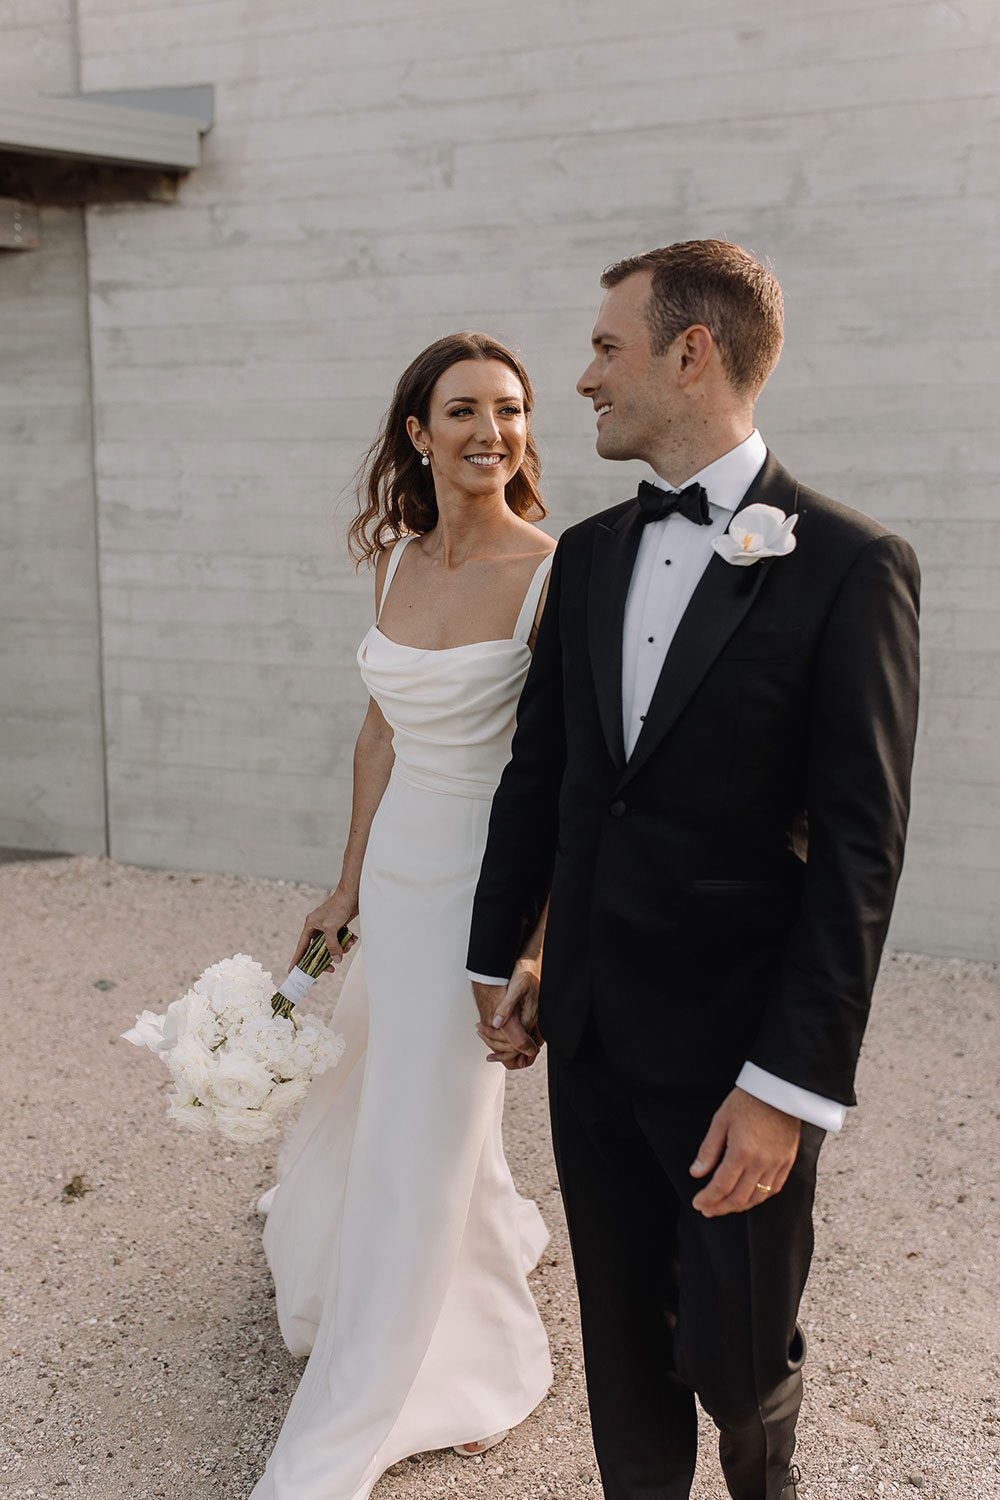 Bride wearing NZ Bespoke Bridal Gown made of silk faile with cowl bodice and detachable overskirt by Vinka Designs - in front of wall smiling at groom